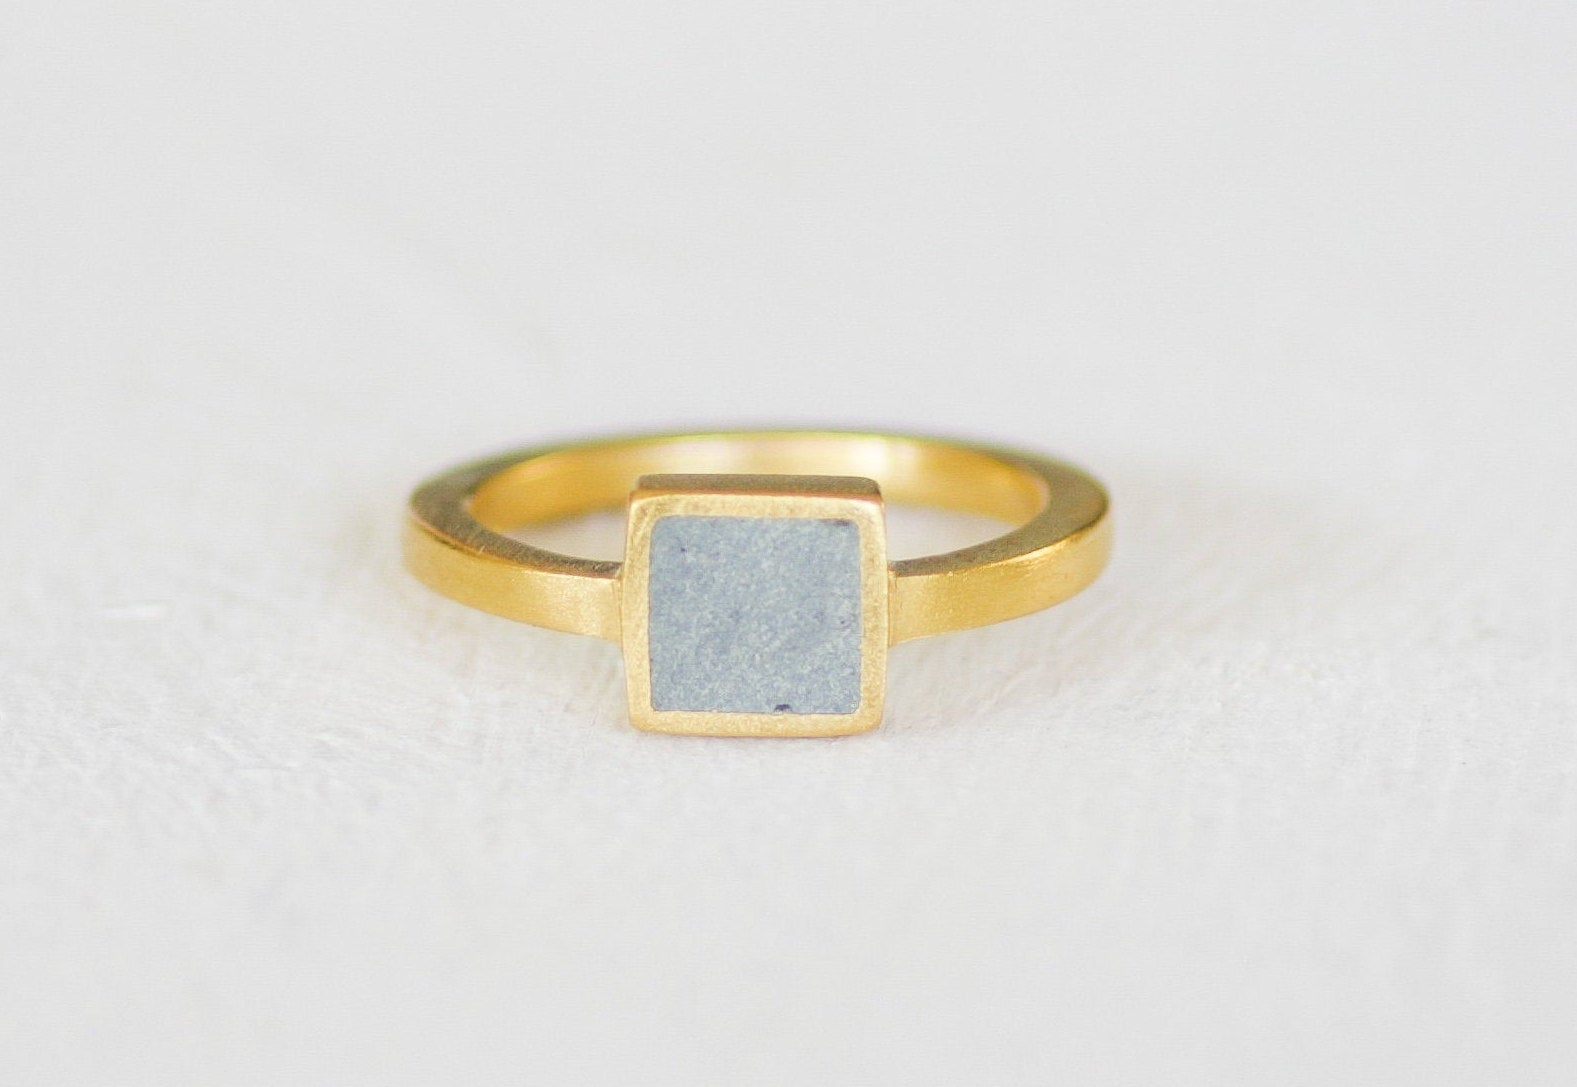 Gold And Concrete Square Ring, Pinky Gold Ring, Delicate Concrete Ring, Cement Jewelry, Concrete Ring Hadas Shaham - hs